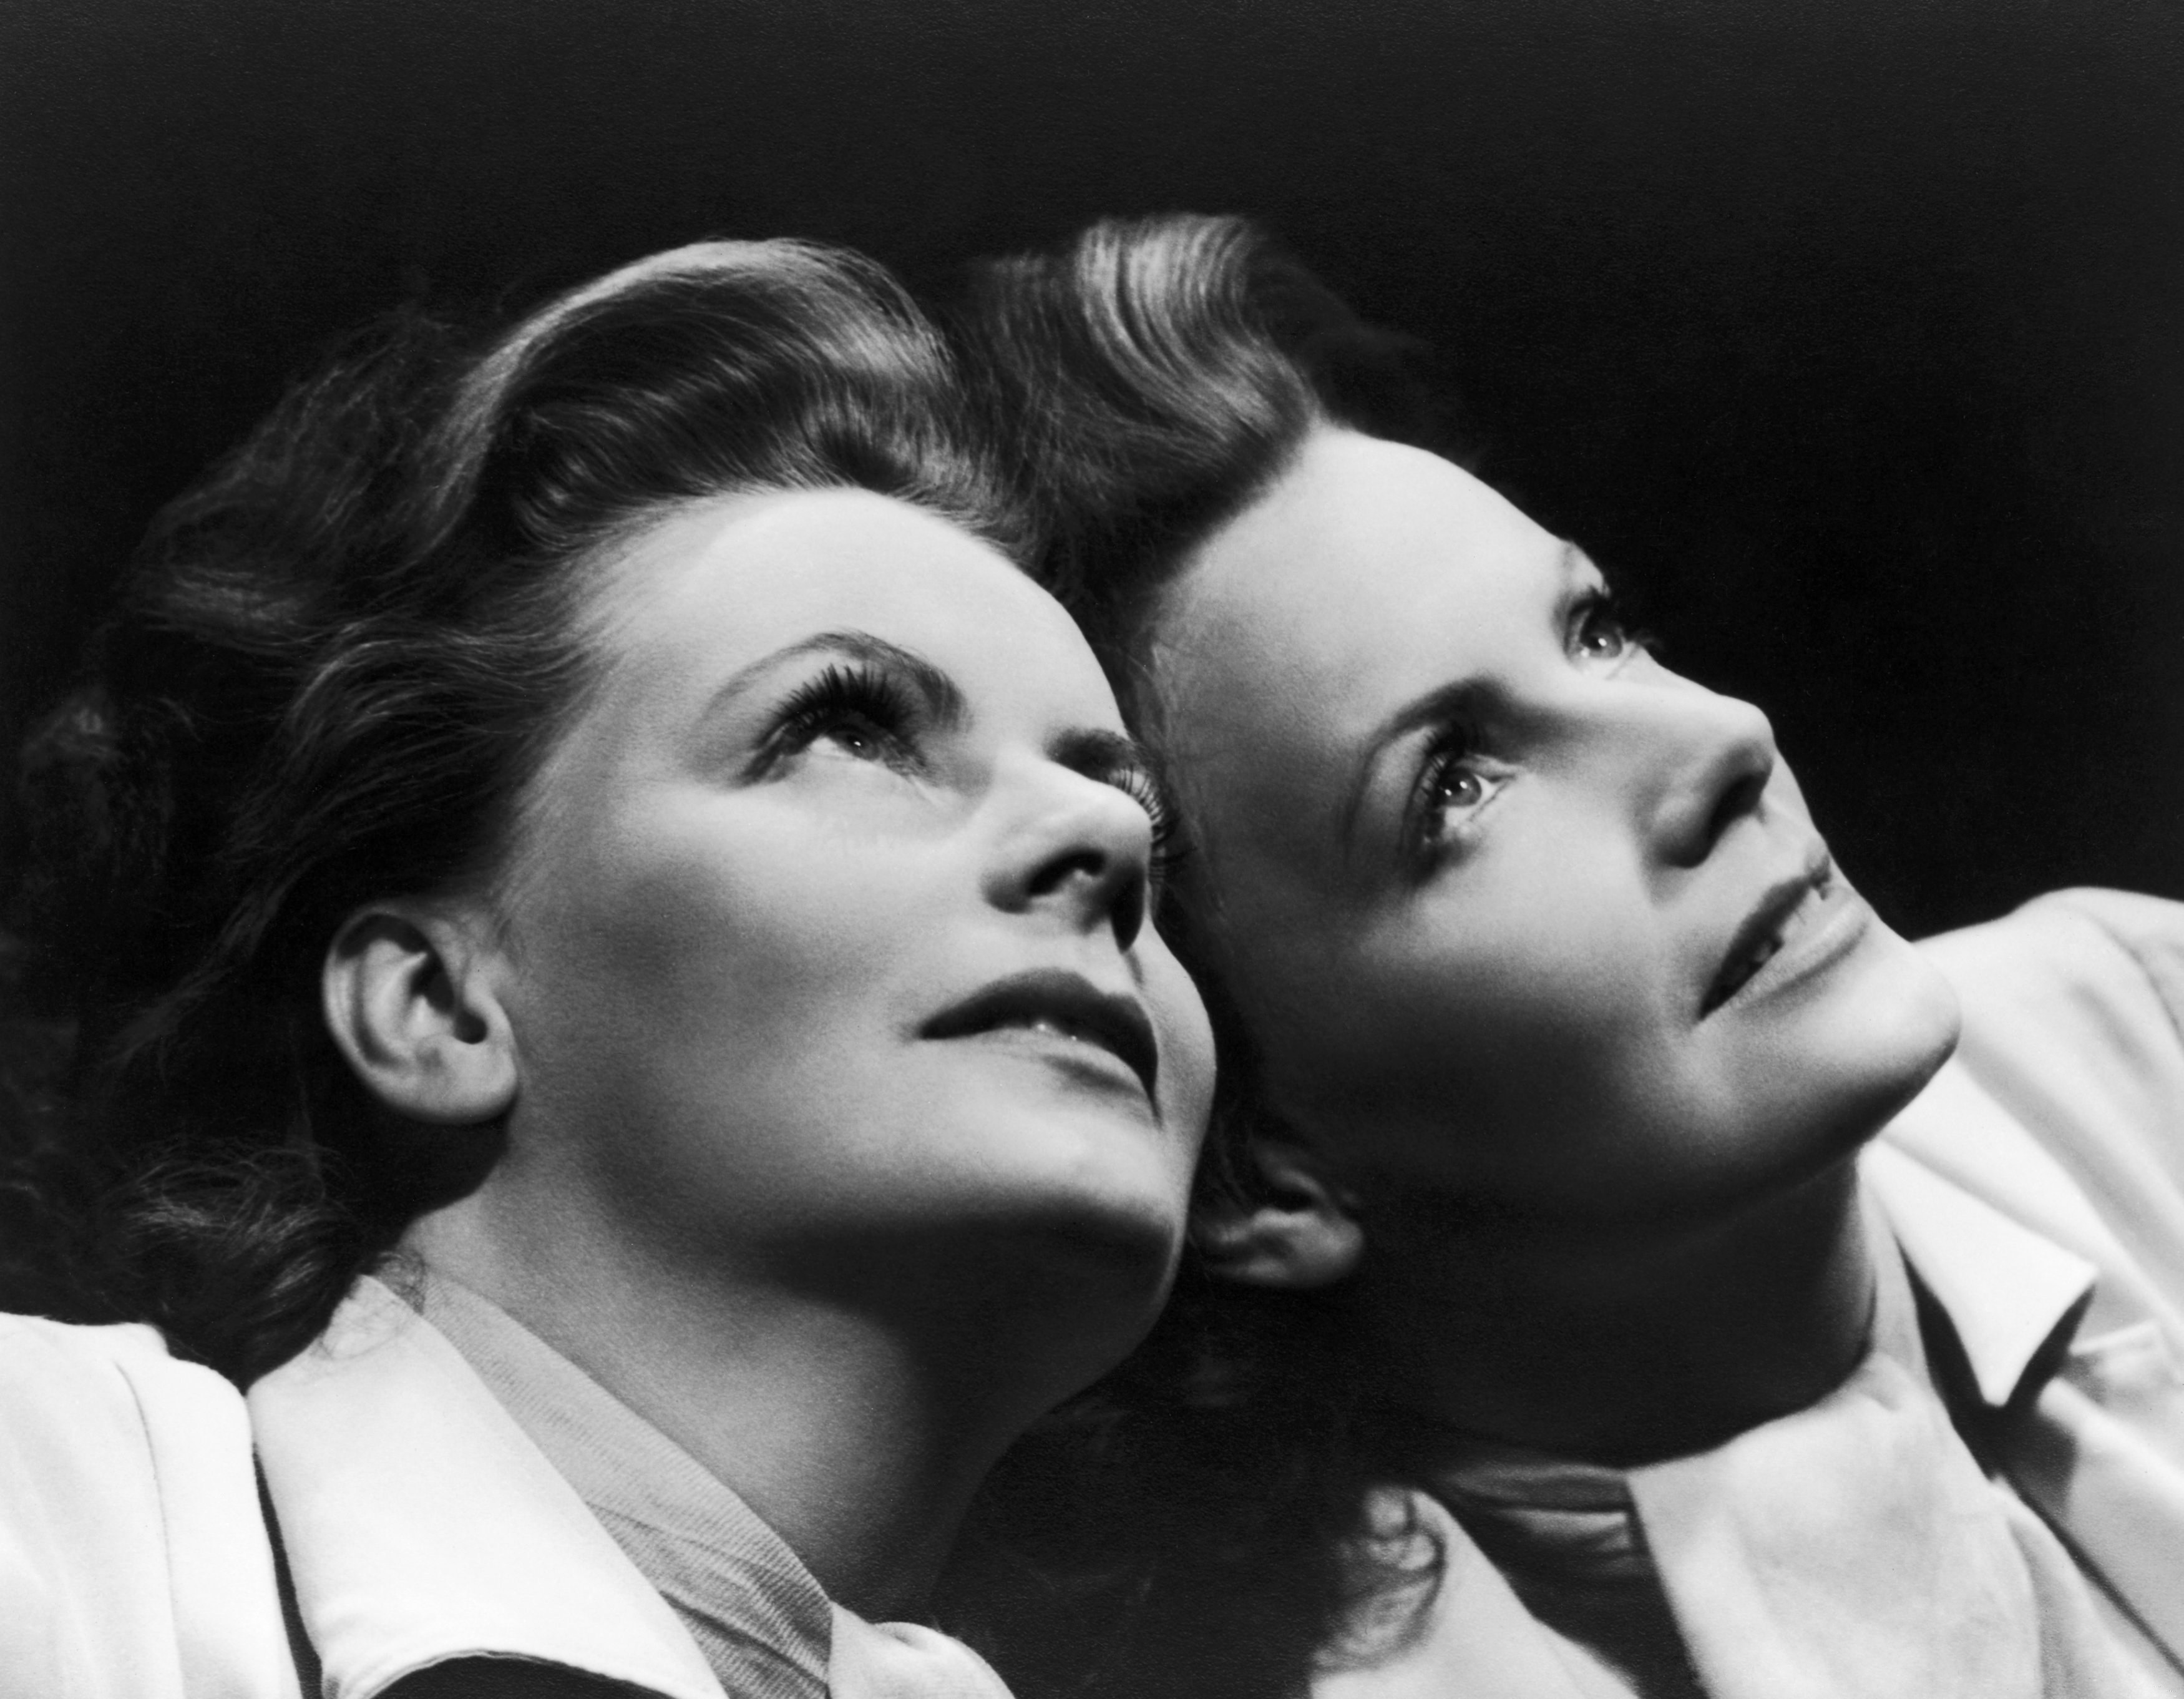 1585899044382_Two_faces_woman_41.jpg - Non tradirmi con me, 1941. L'ultima interpretazione di Greta Garbo